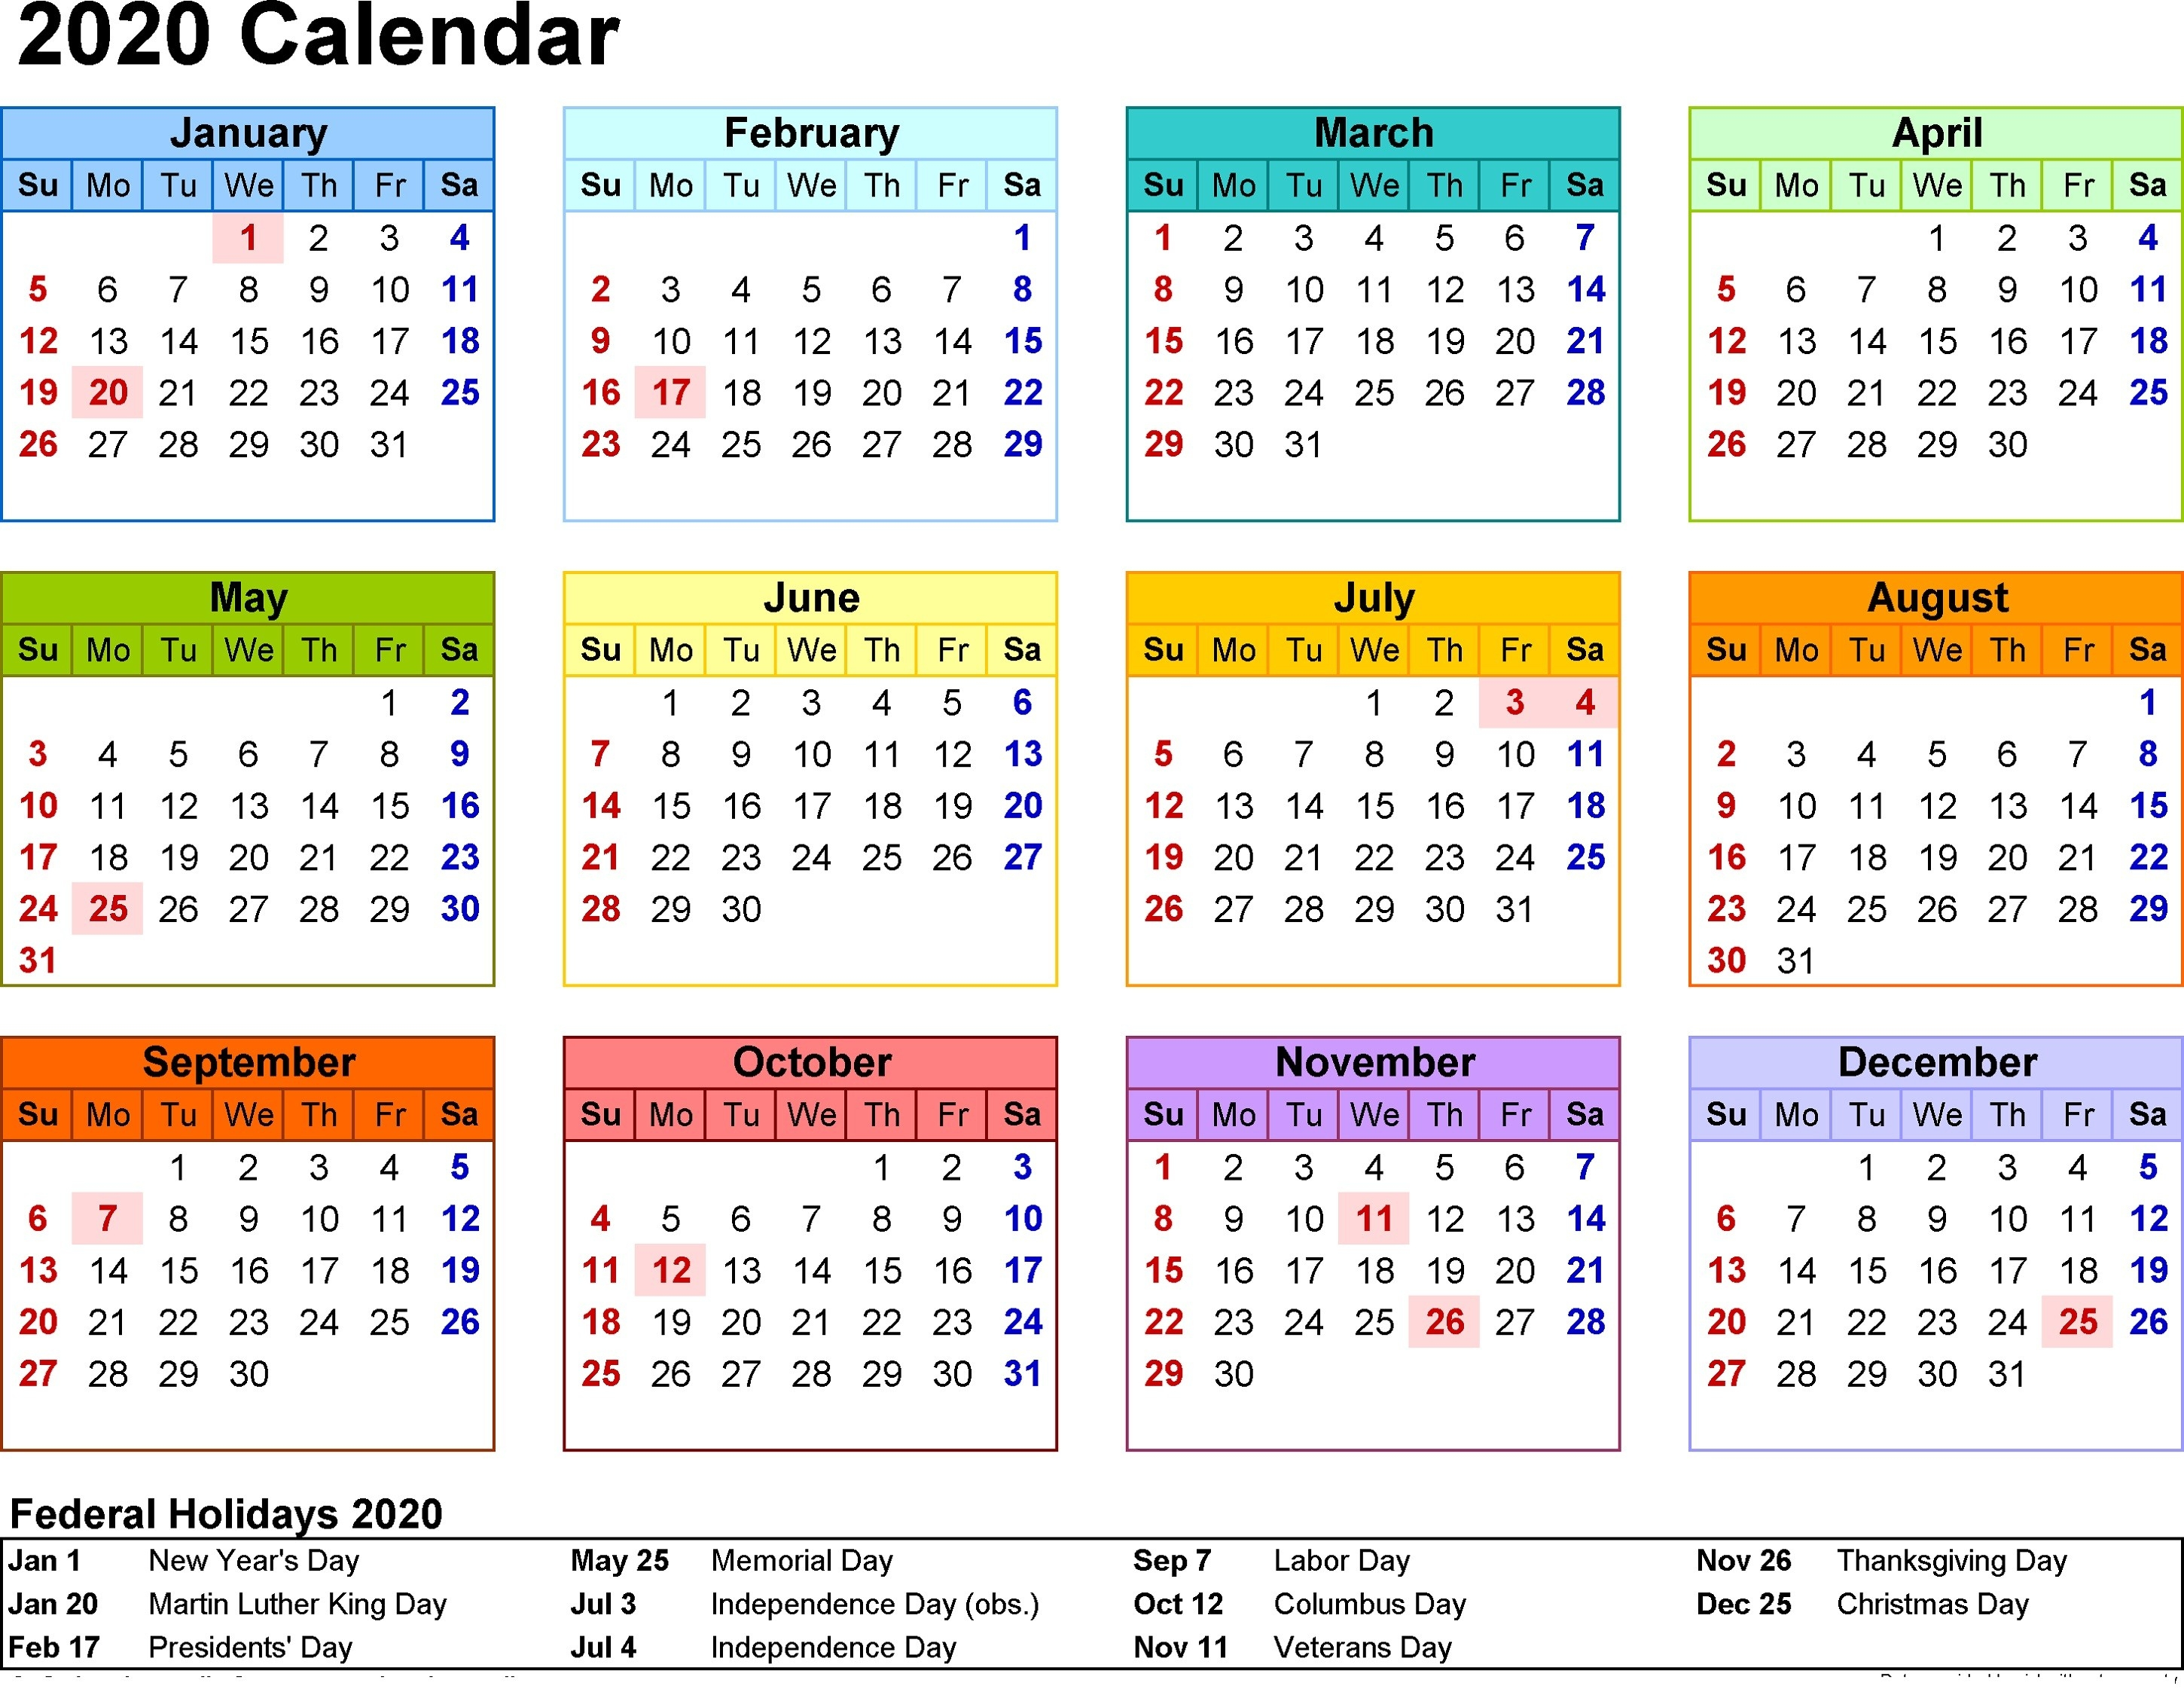 2020 Calendar With Holidays - Remar-Calender With Public Holidays